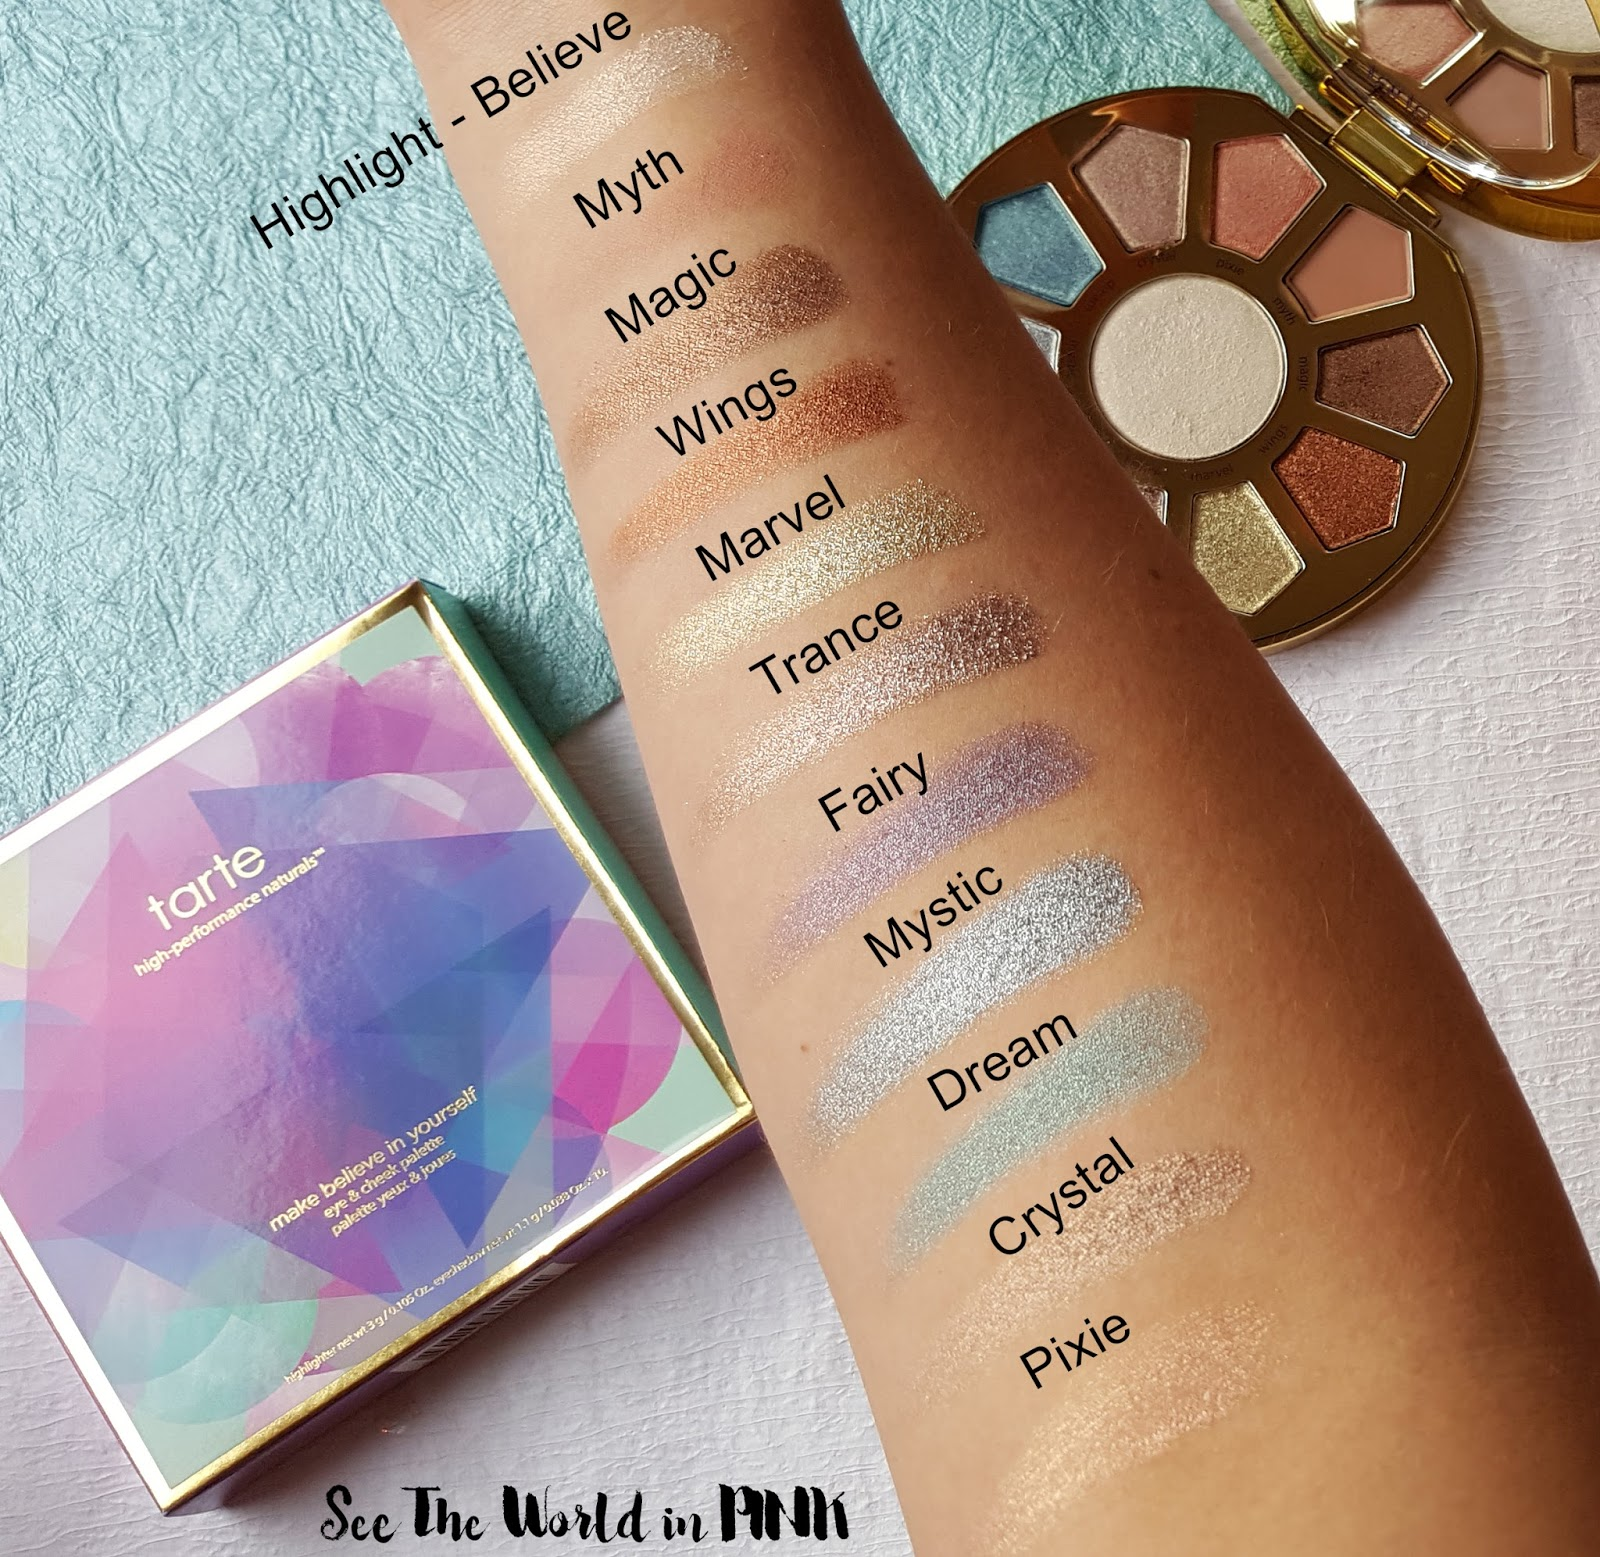 Tarte Make Believe In Yourself: Eye & Cheek Palette - Thoughts and Swatches!